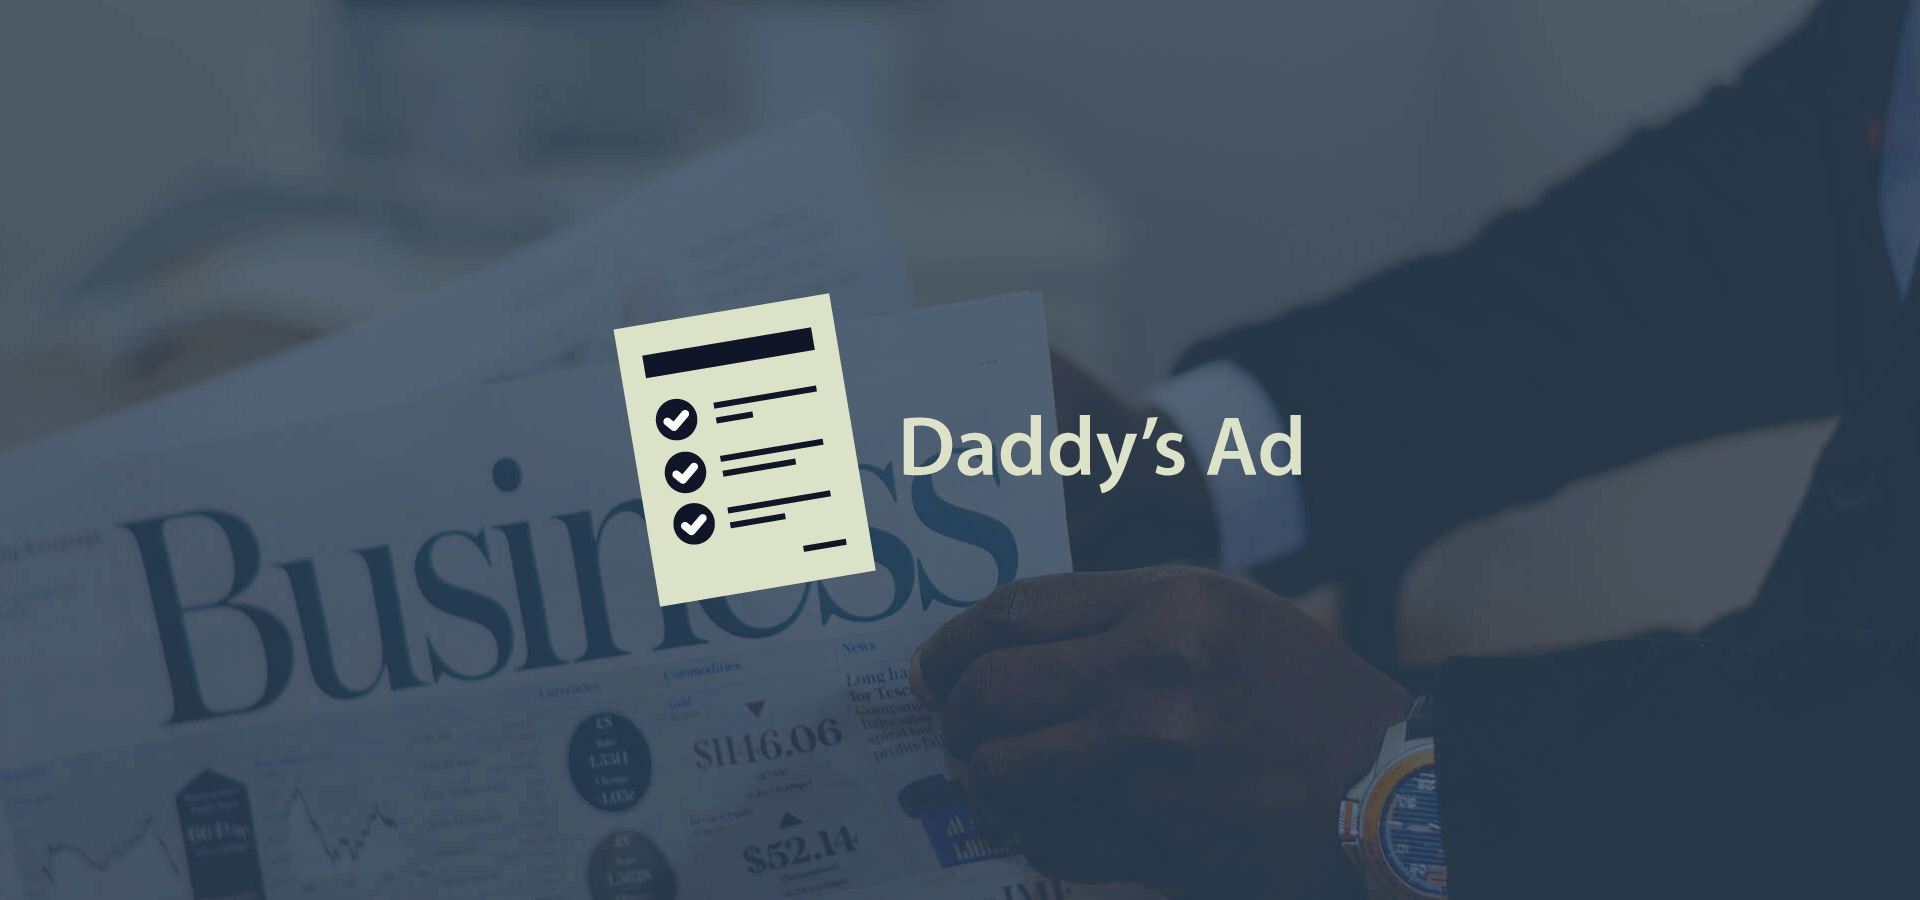 Daddy's Ad